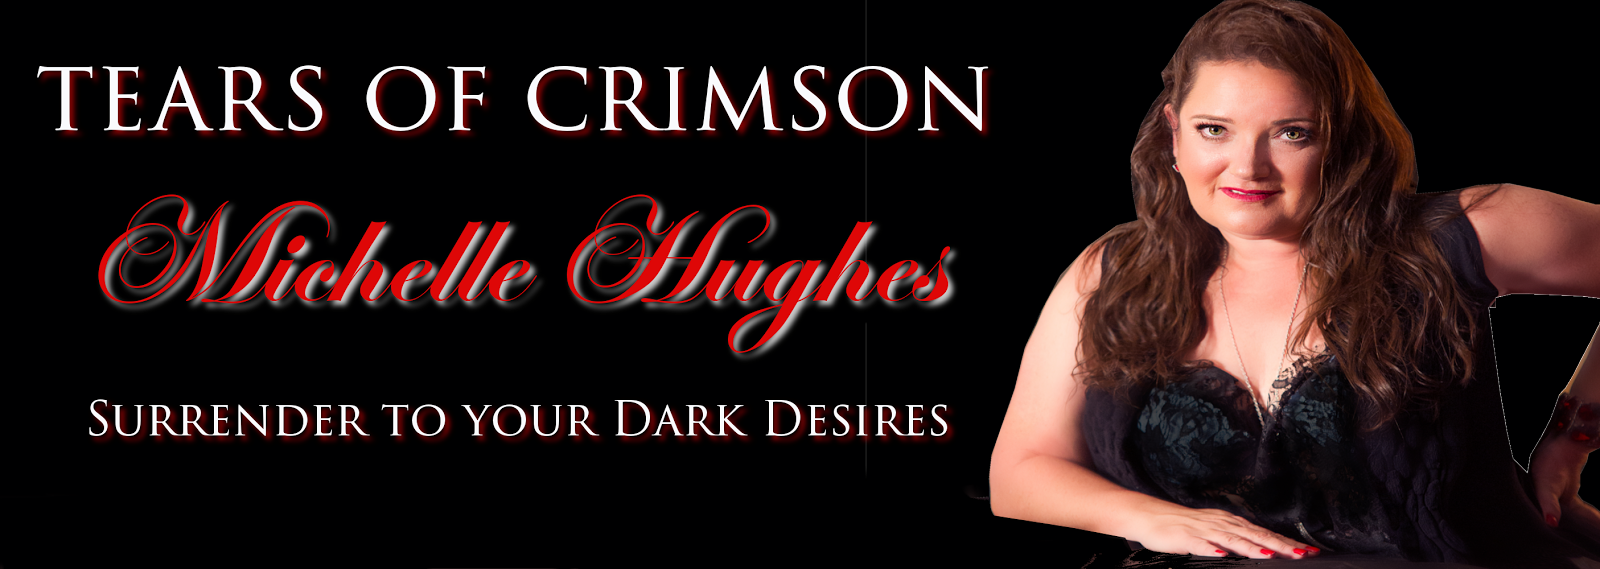 Tears of Crimson Books